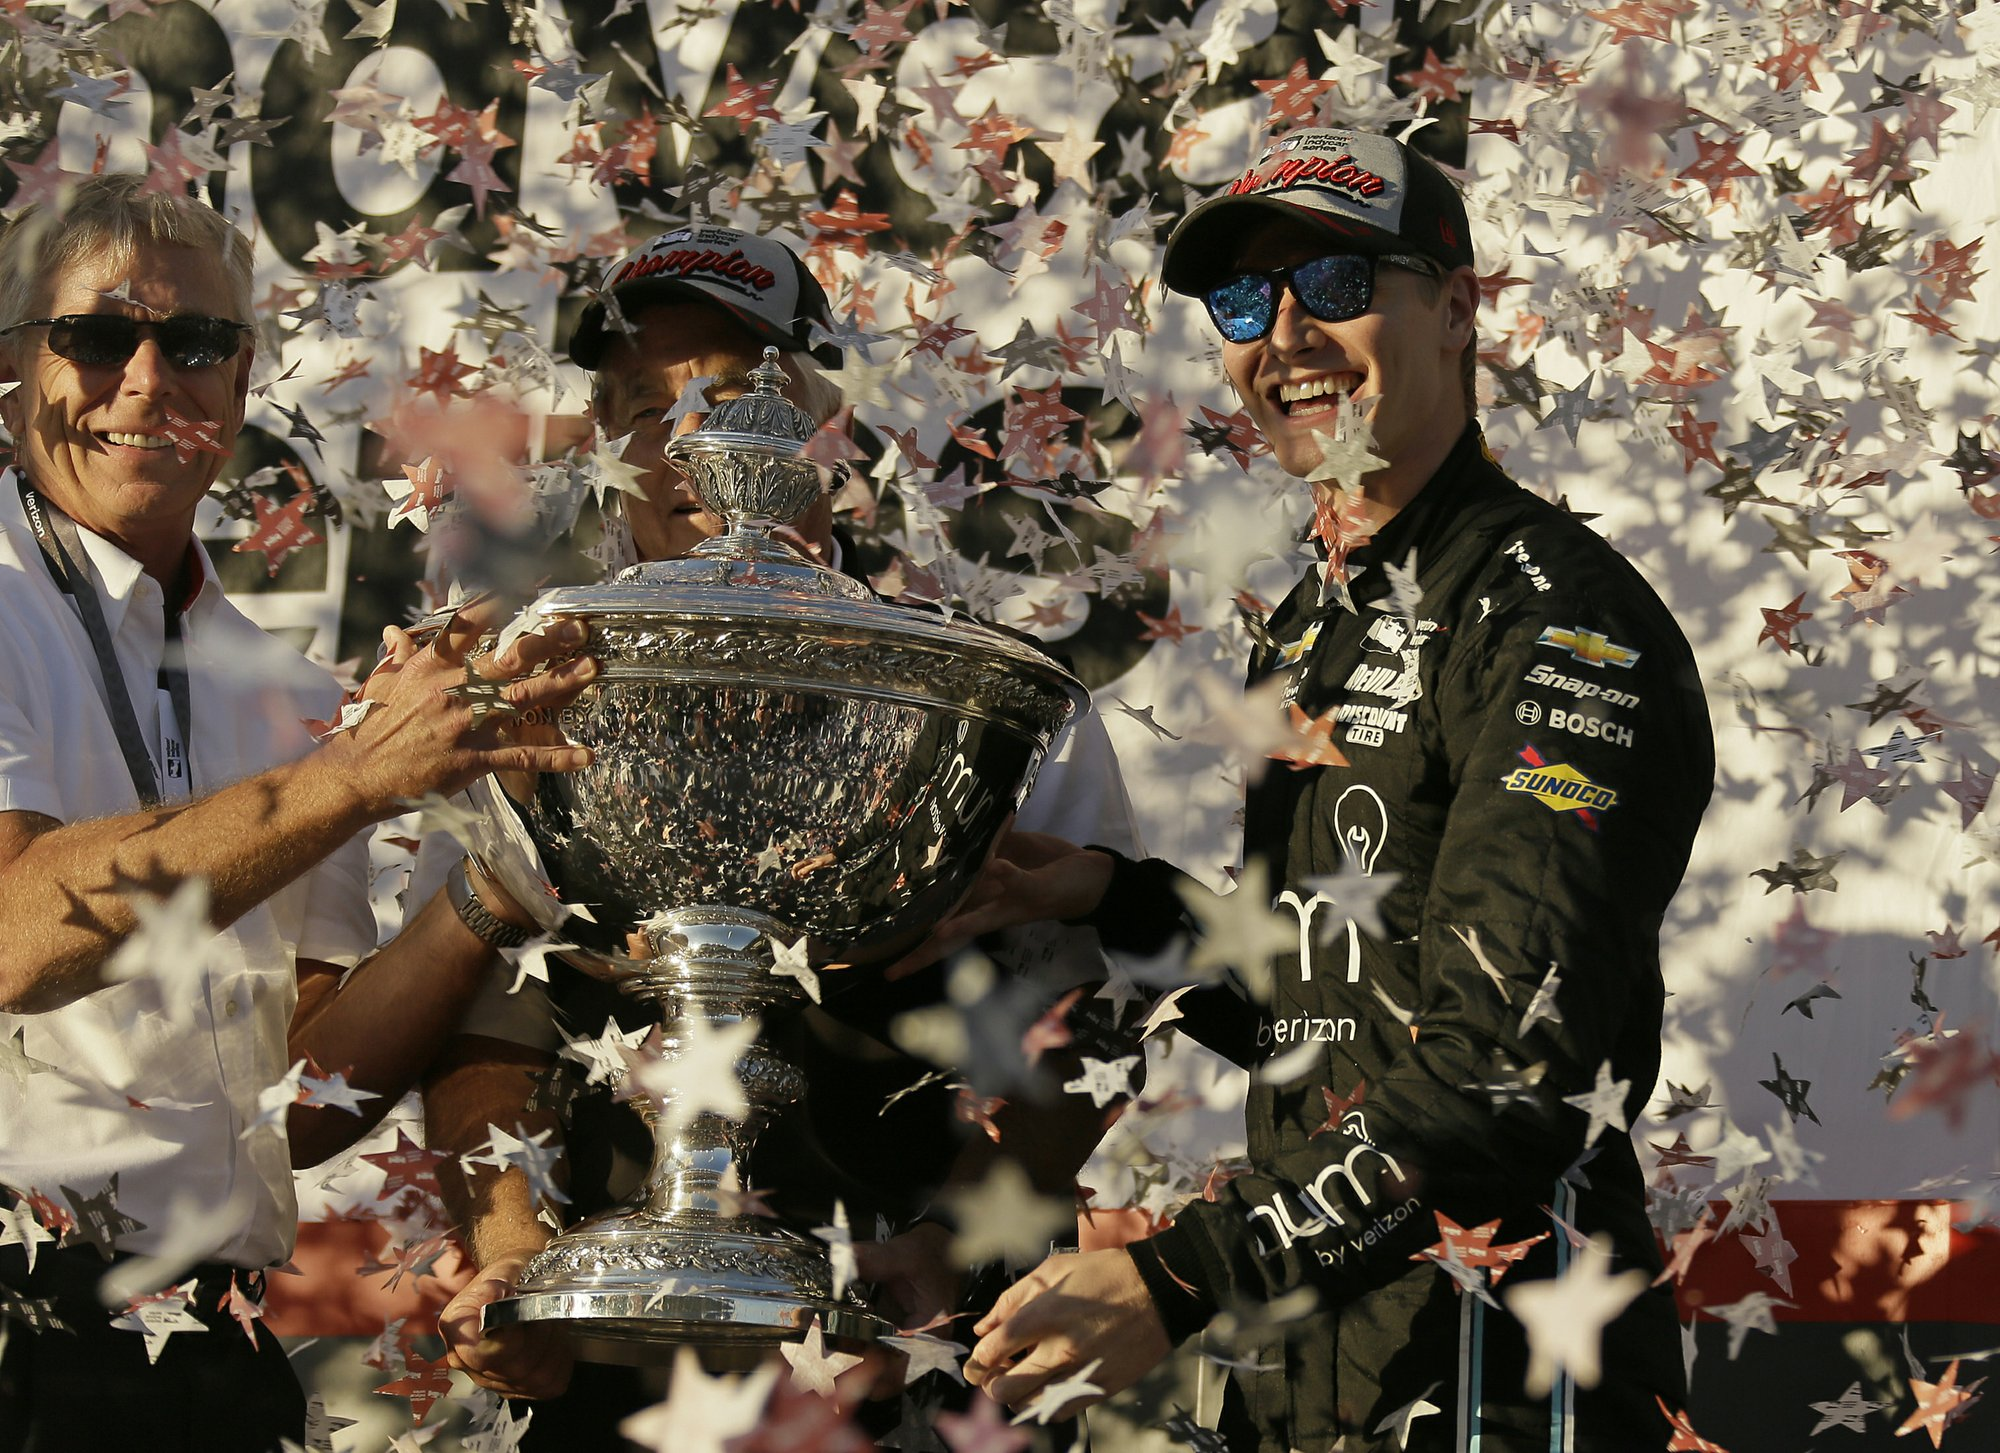 Newgarden leading on different path in IndyCar title chase